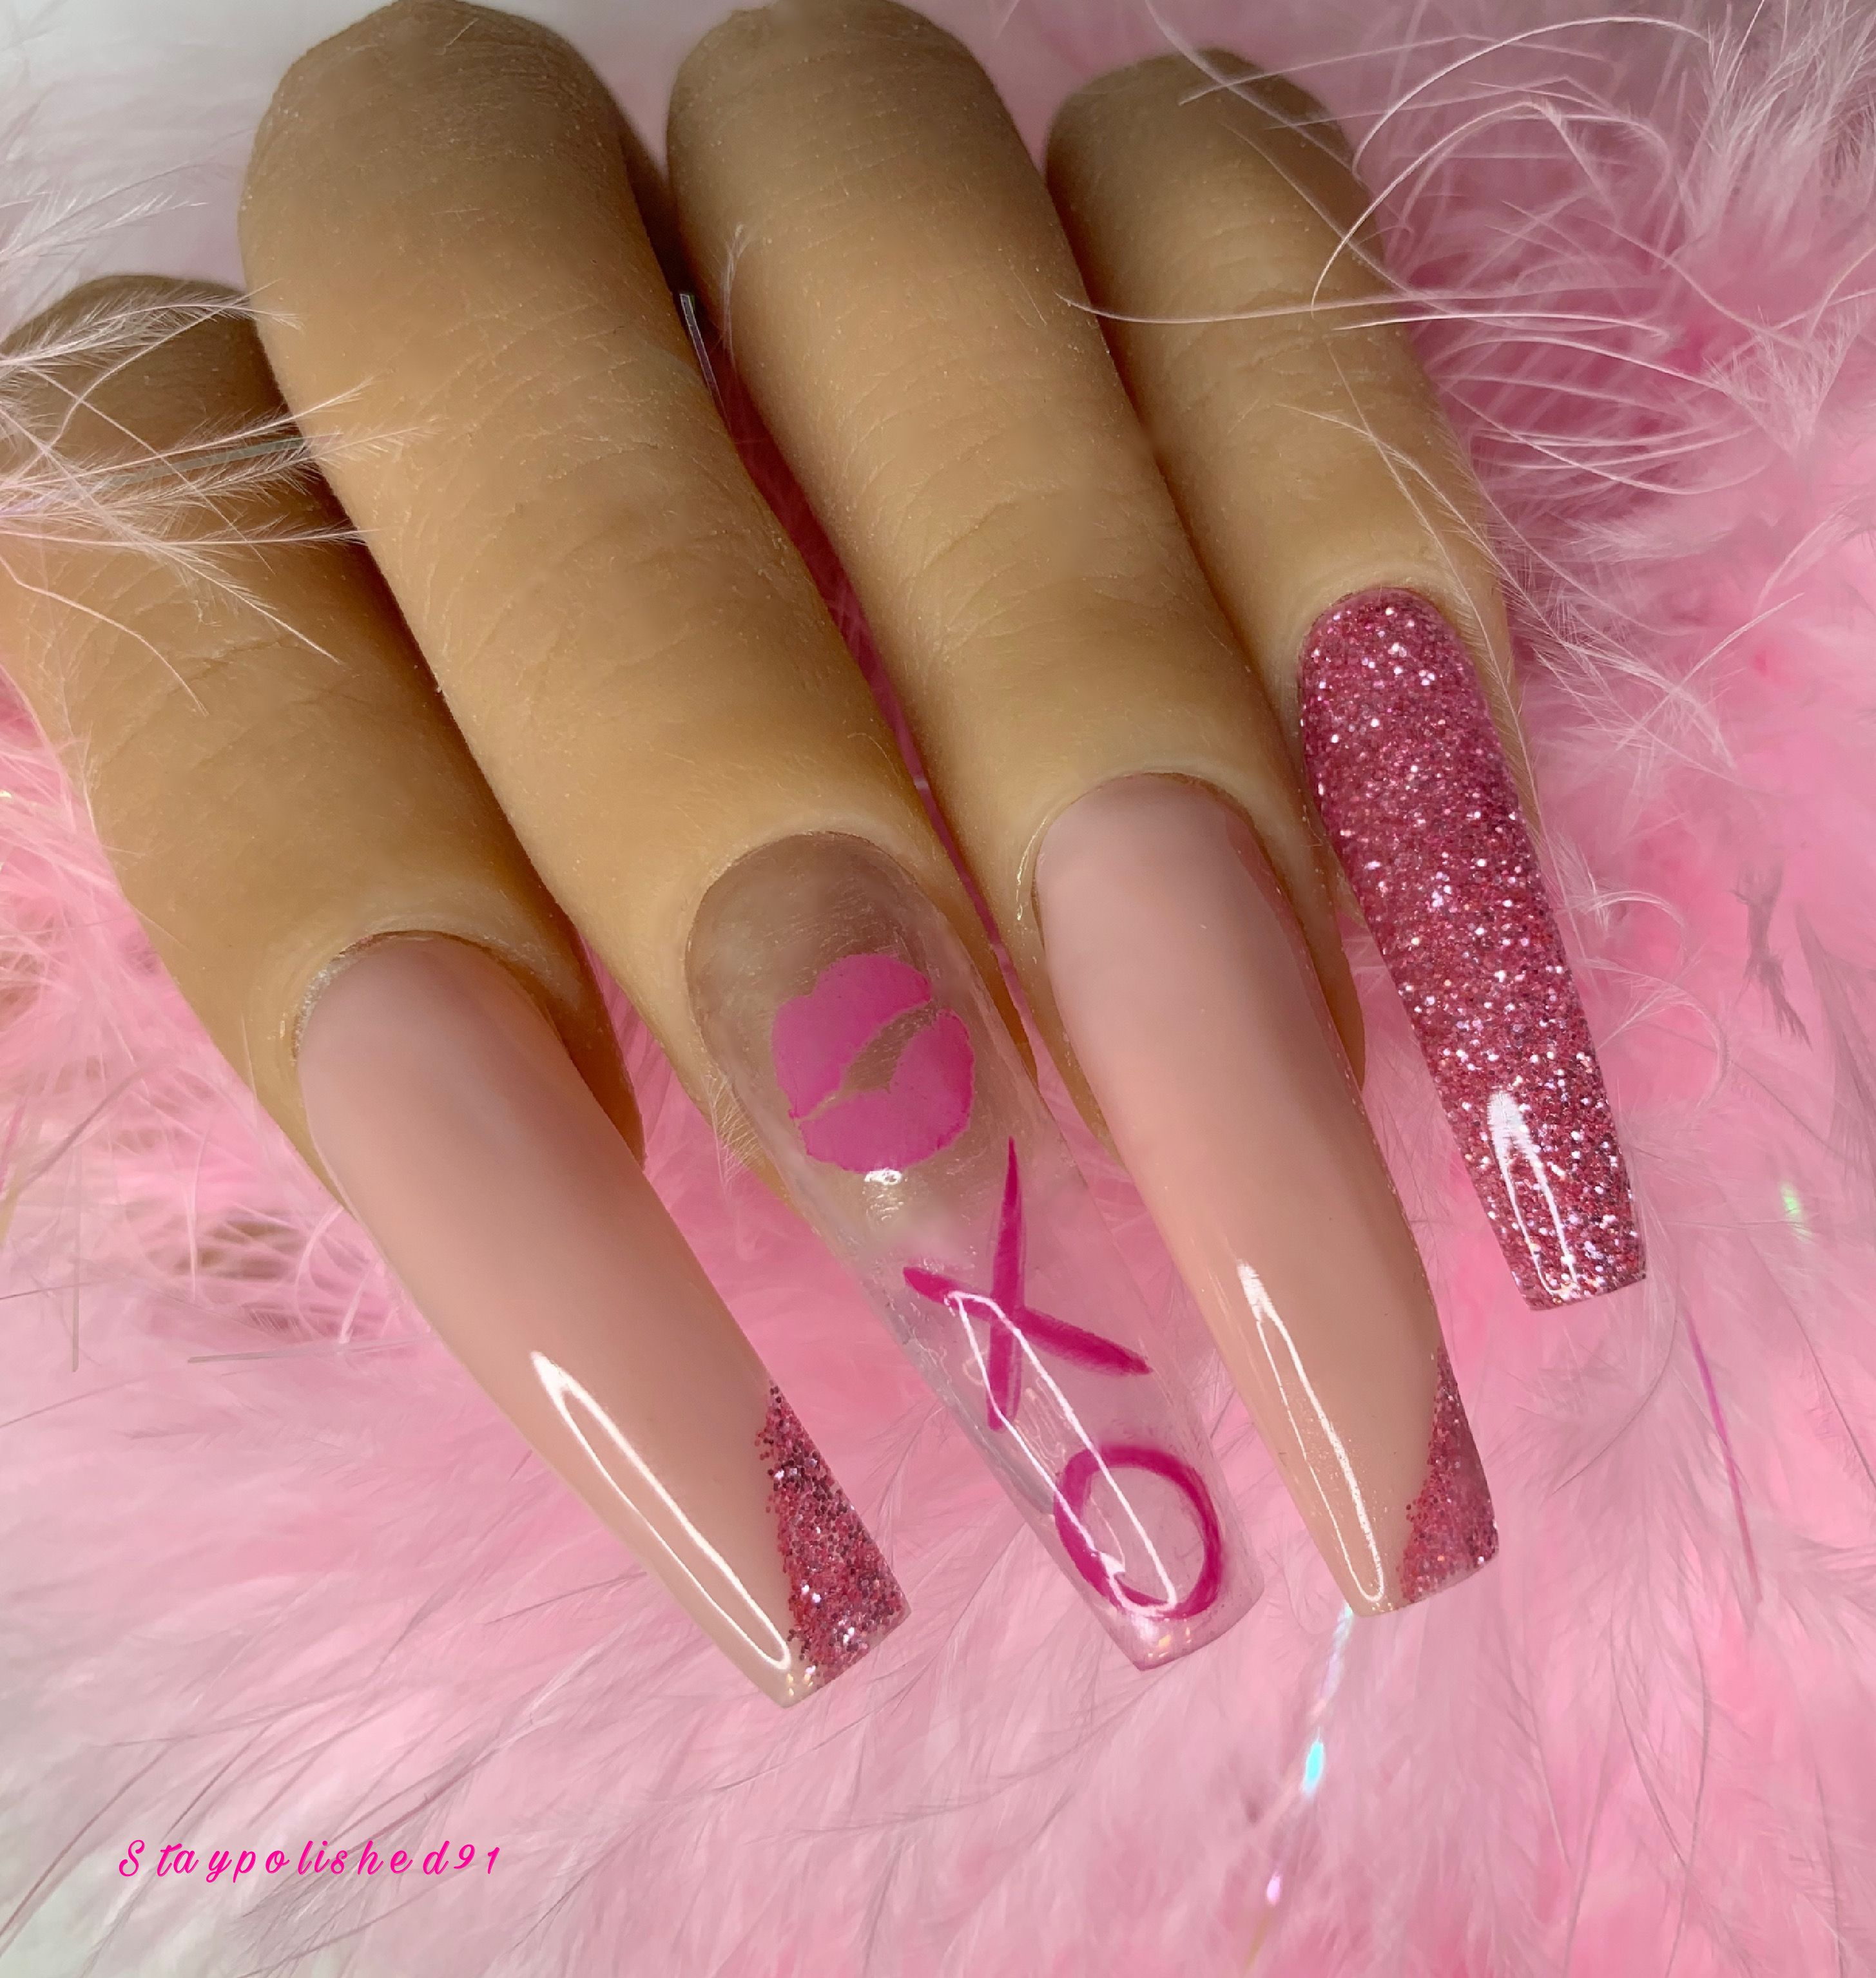 Staypolished91 Instagram In 2020 Polygel Nails Nails Best Acrylic Nails